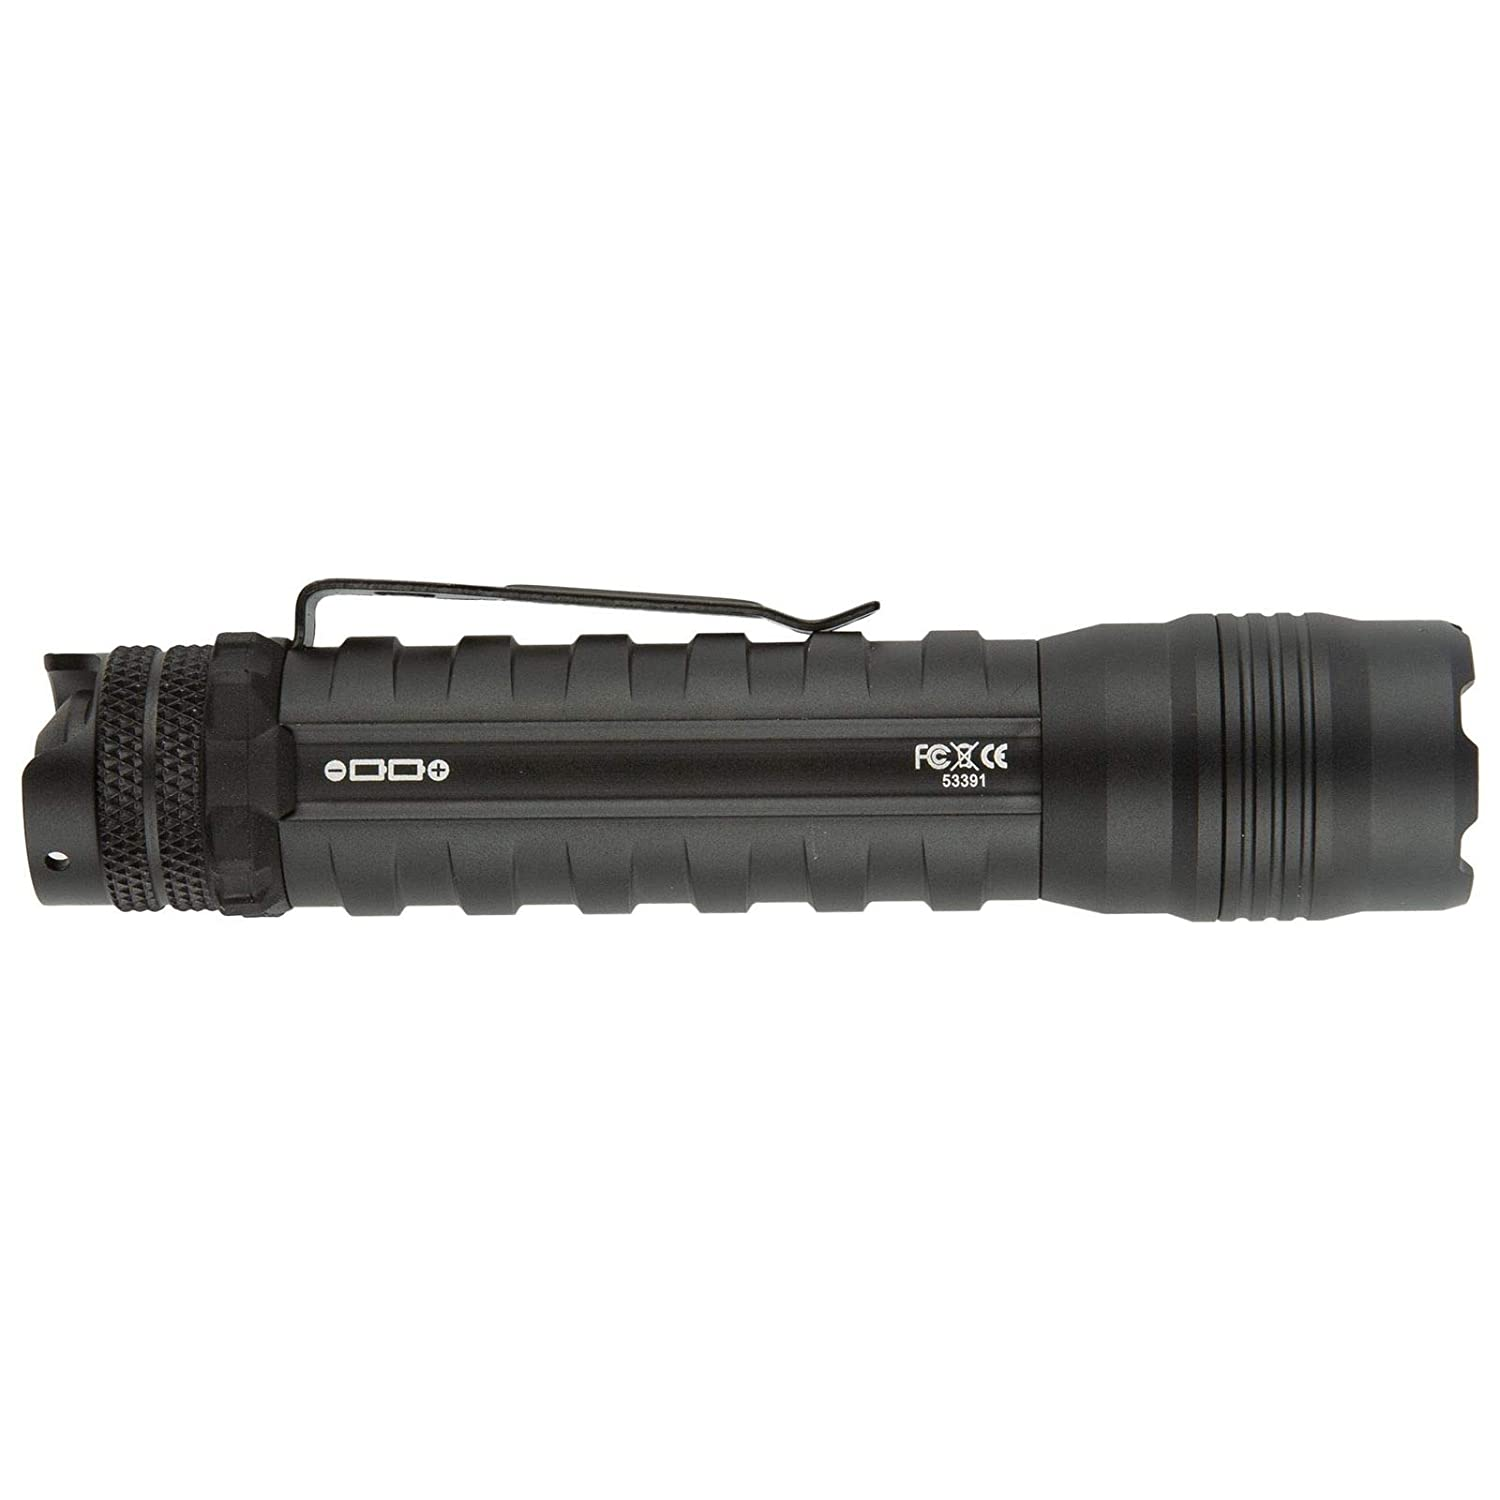 5.11 Rapid L1 Tactical Flashlight Black 511 Tactical Style 53390 Sports 888579189476